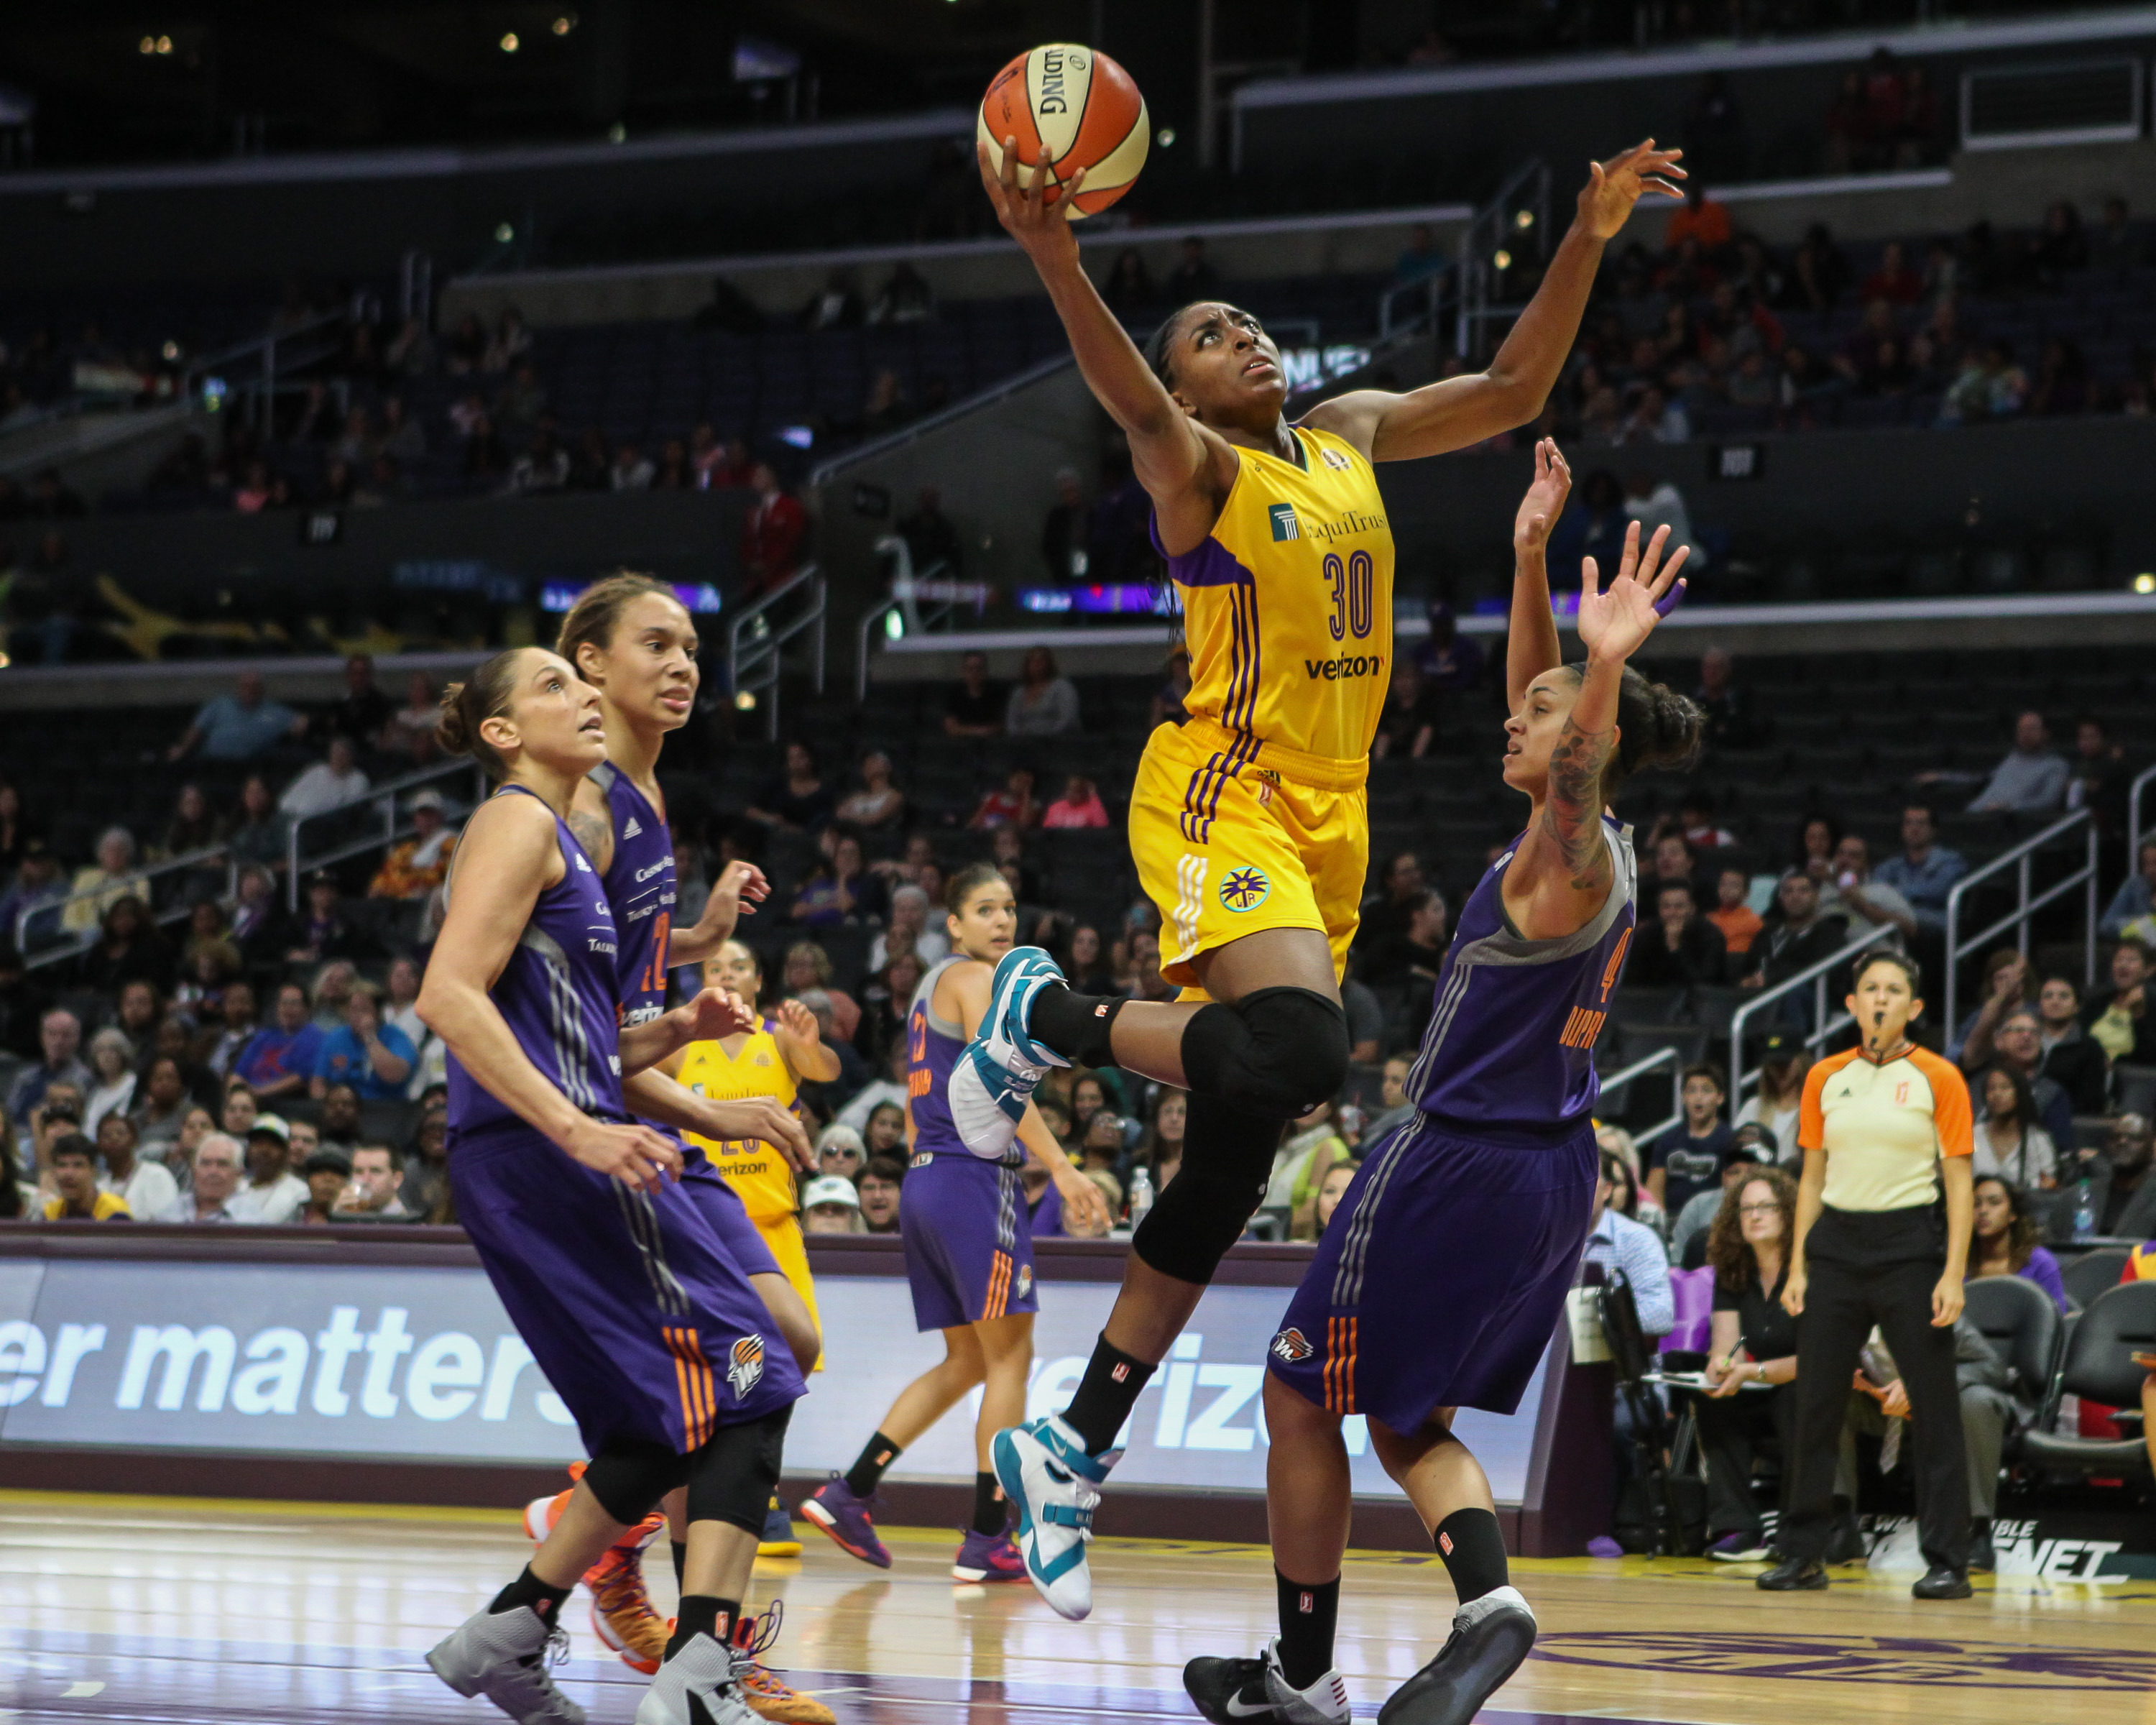 Nneka Ogwumike making her way to basket during the Phoenix Mercury vs Los Angeles Sparks game at Staples Center in Los Angeles, Ca on September 13, 2016. (Photo by Jevone Moore/Full Image 360)